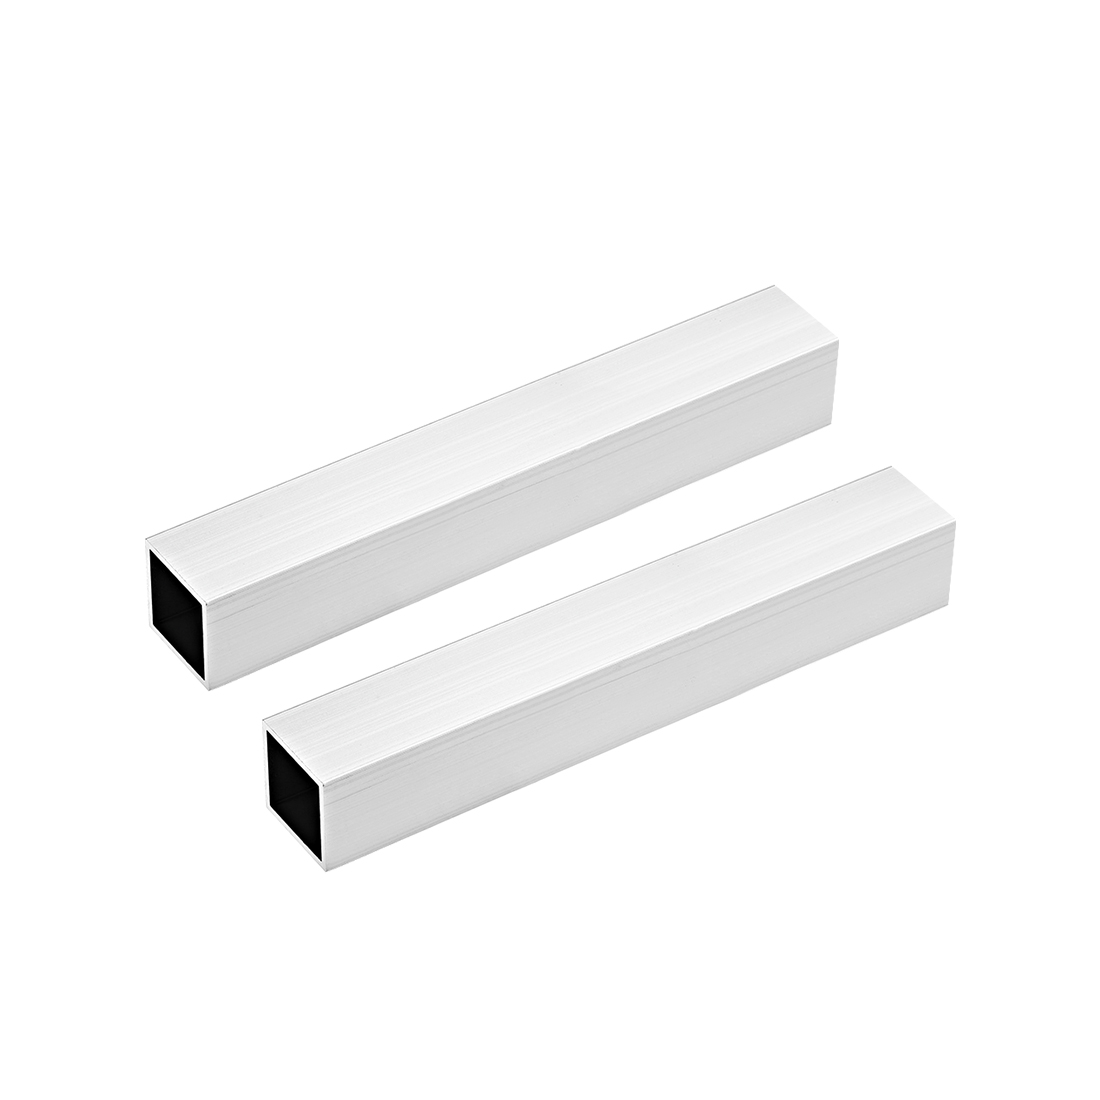 6063 Aluminum Square Tube 30mmx30mmx2mm Wall Thickness 200mm Length Tubing 2 Pcs